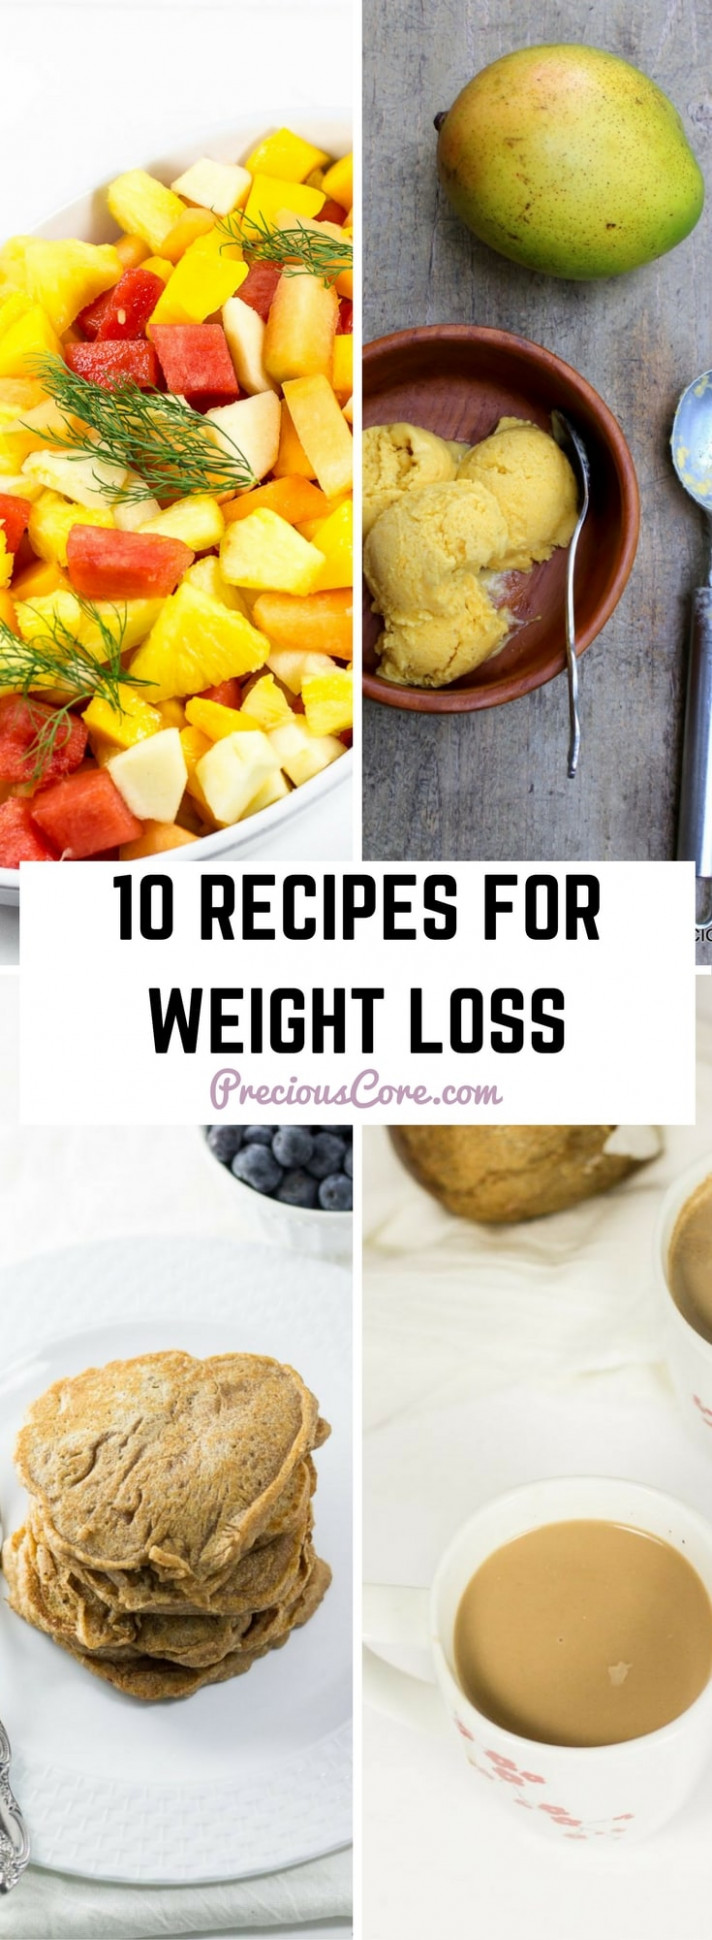 13 RECIPES FOR WEIGHT LOSS | Precious Core - food recipes healthy weight loss